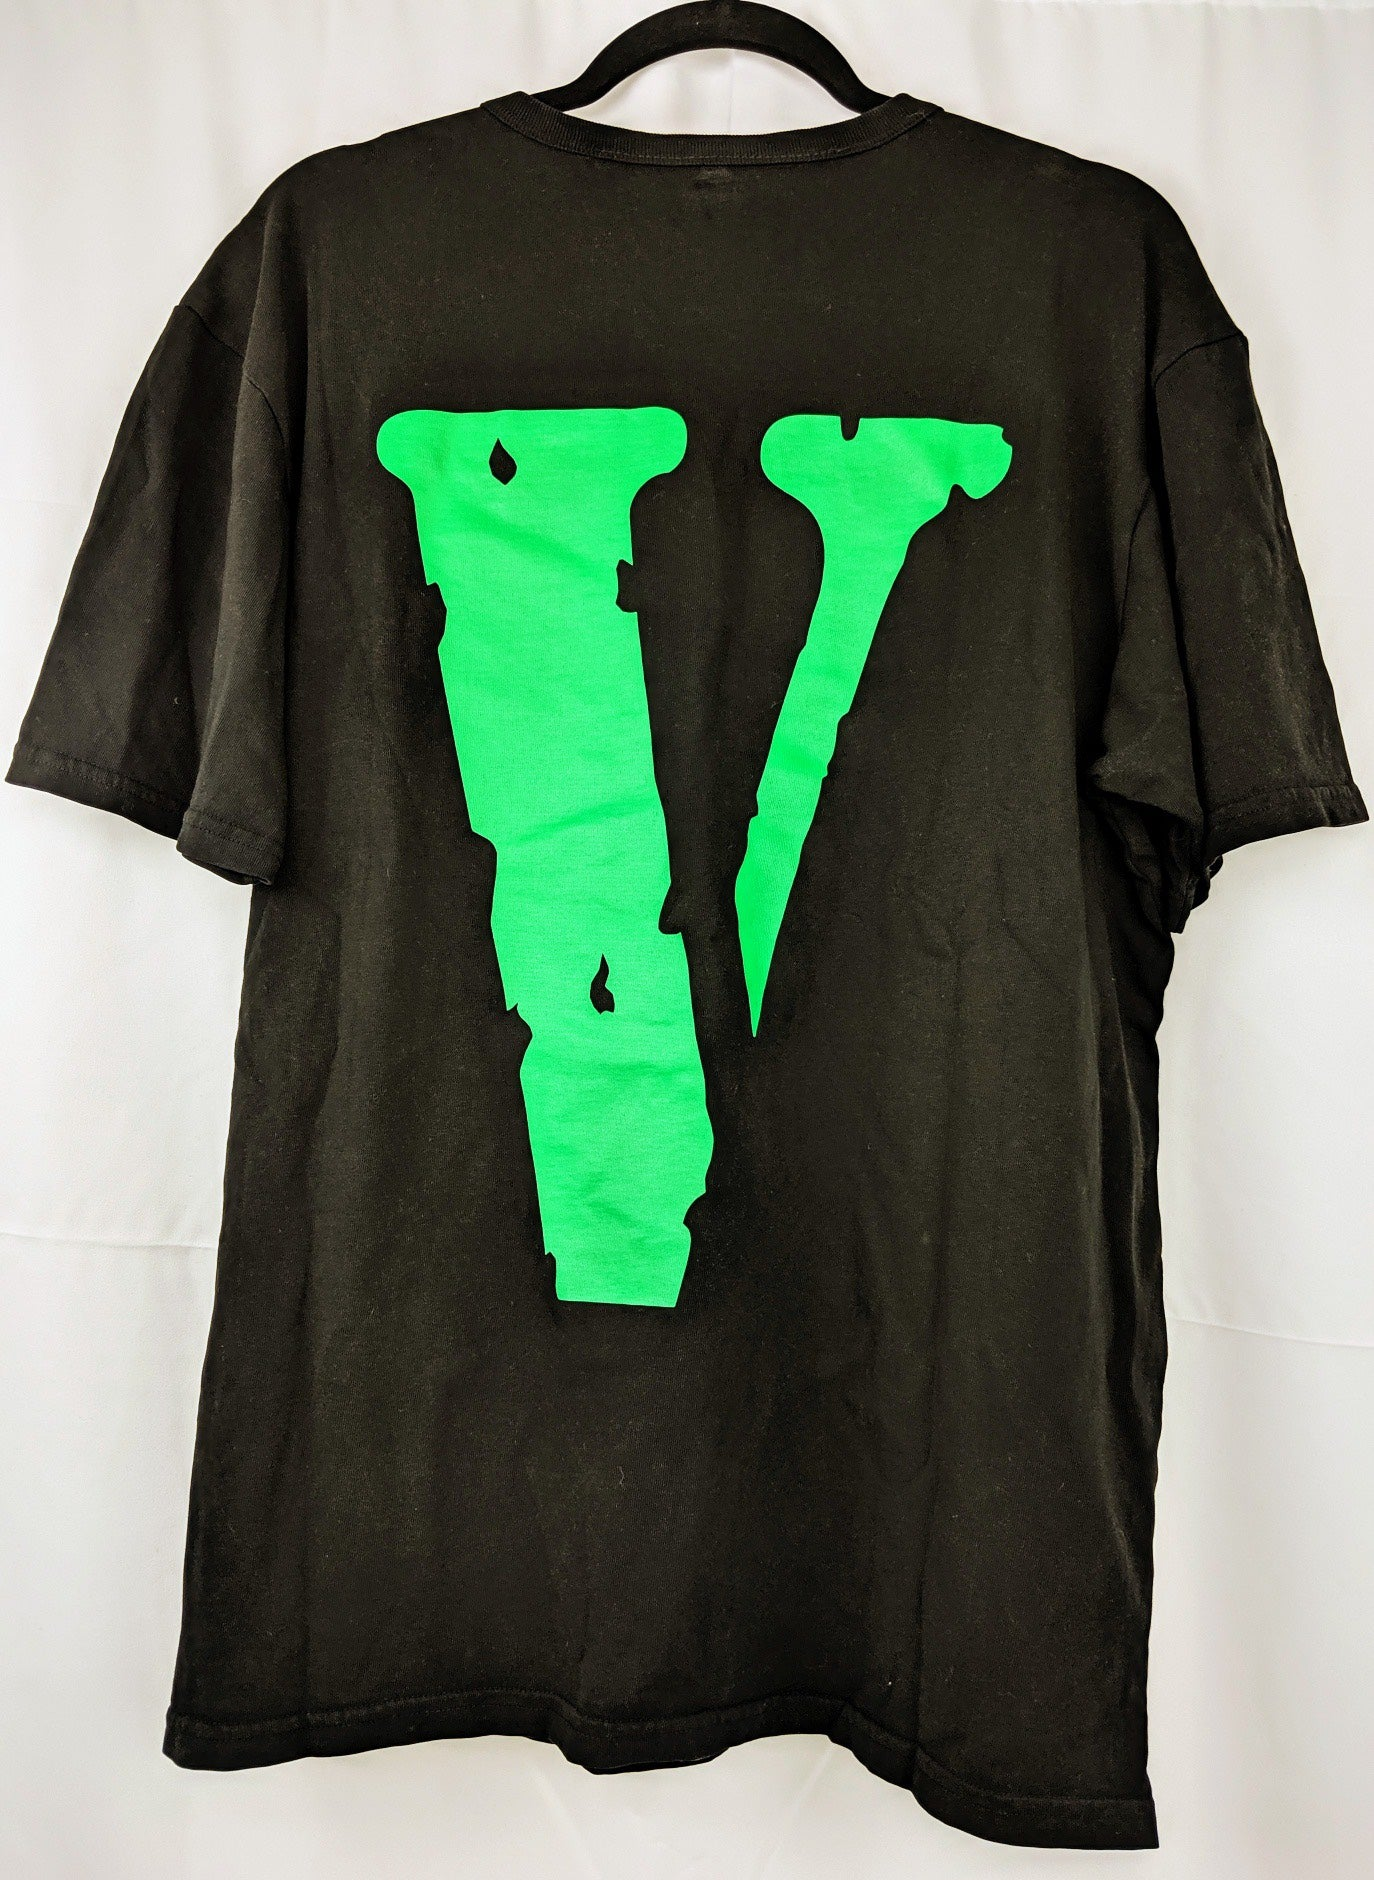 Vlone Friends Green Tee